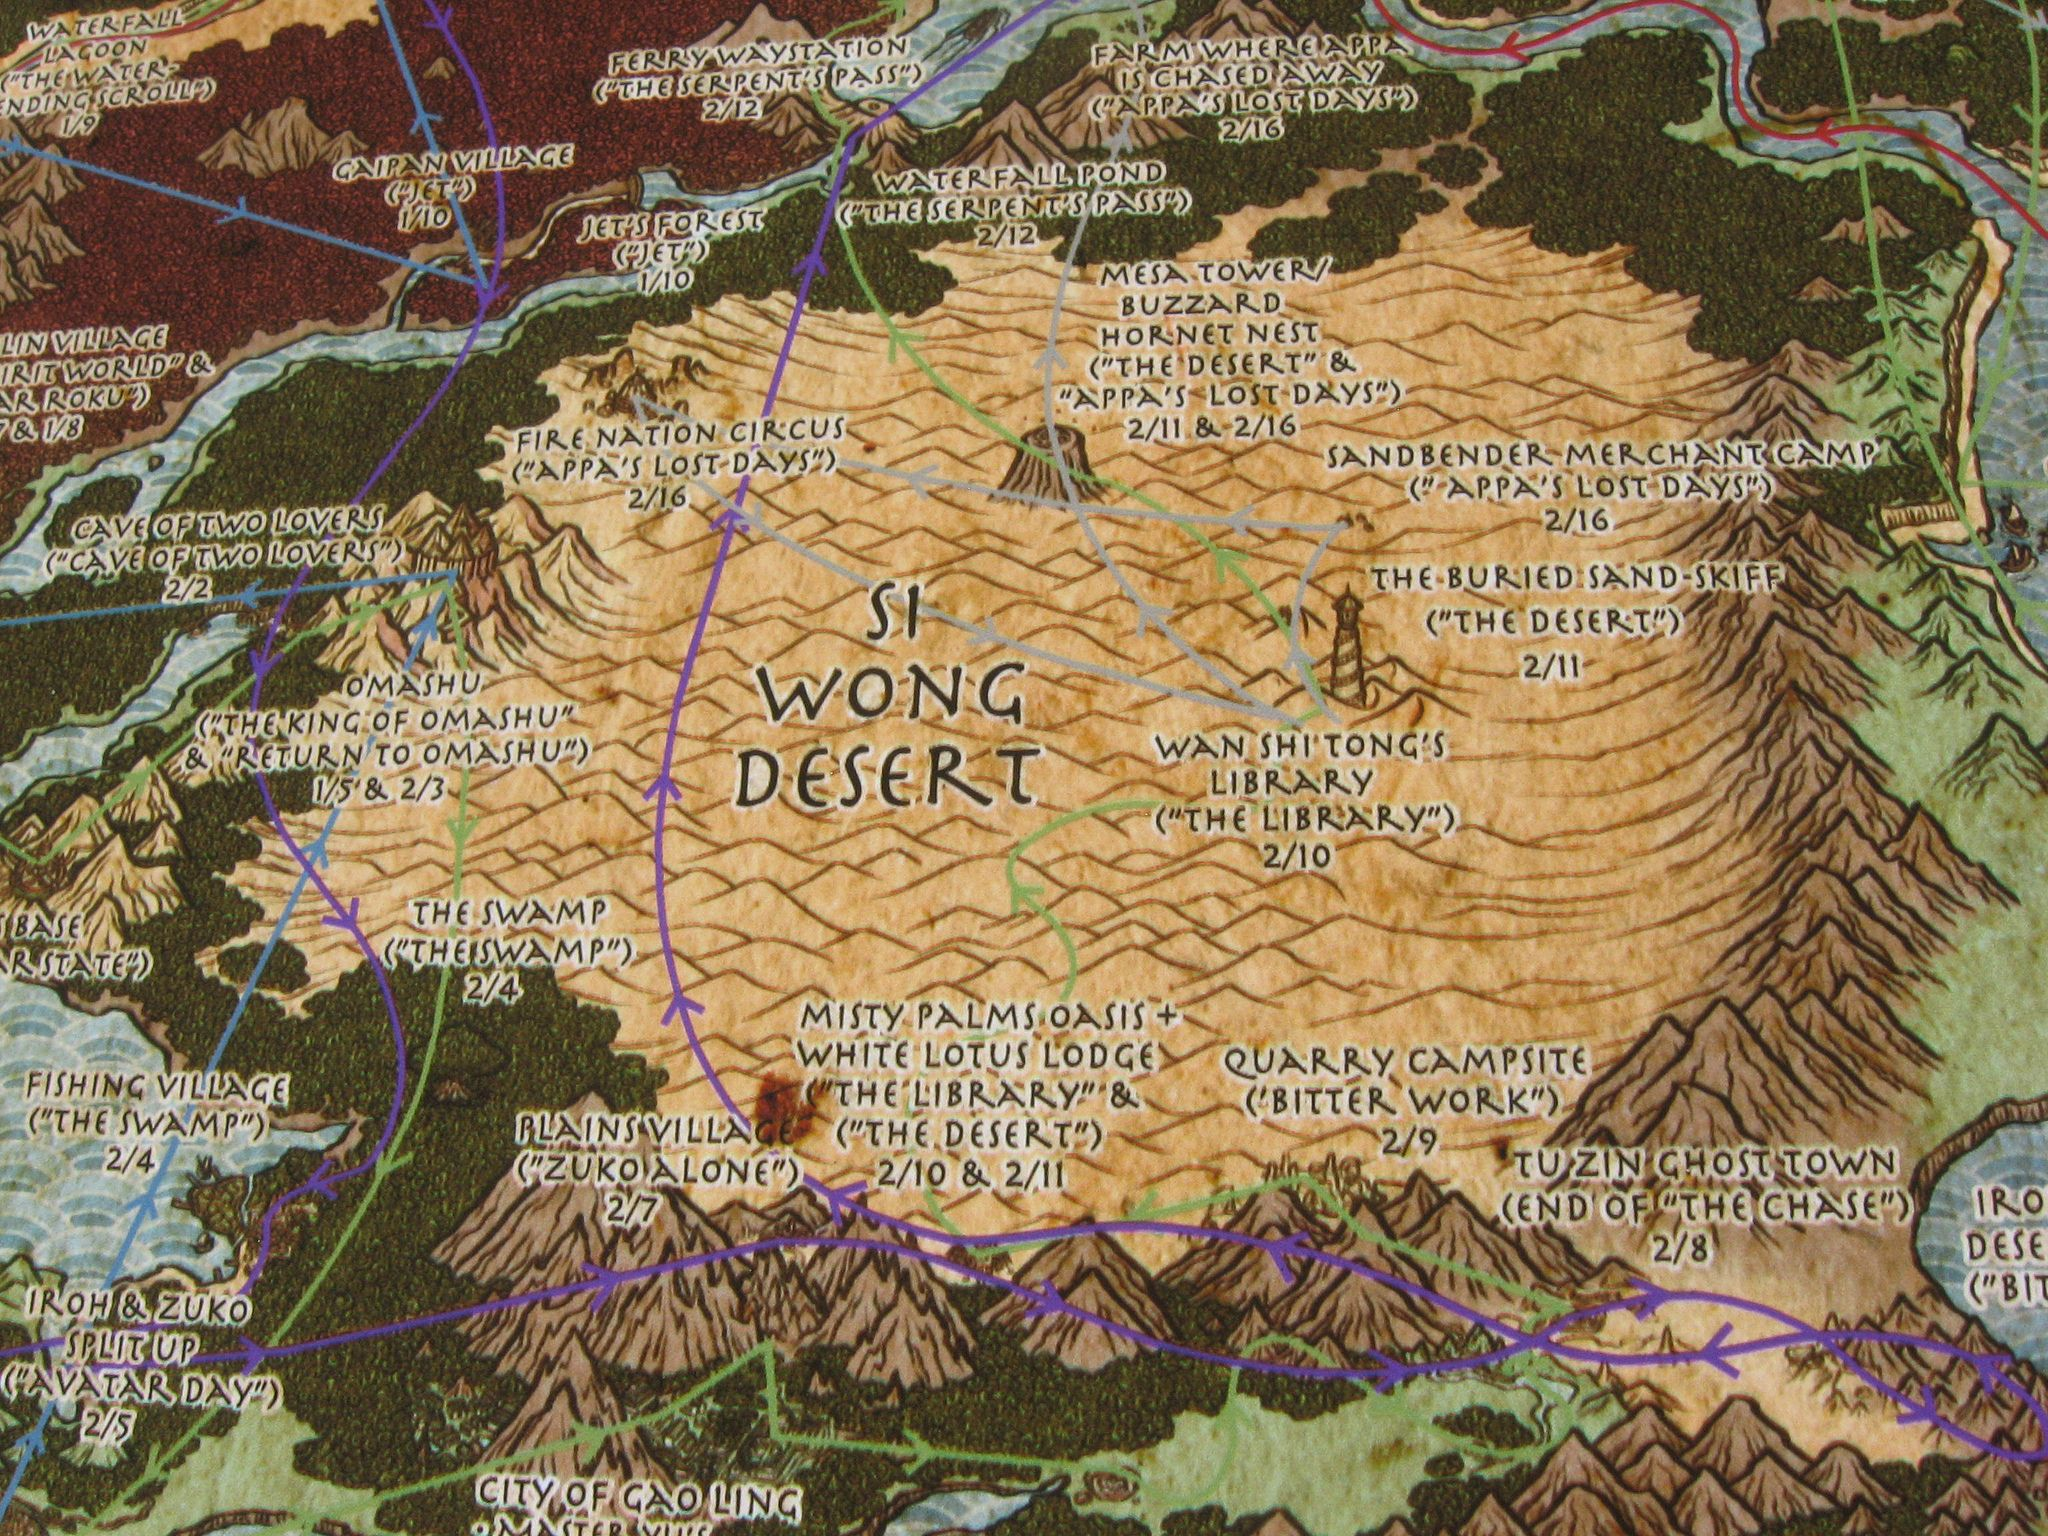 Detail Of A Map The World Avatar Last Airbender Charting Aang Gangs Journey From Southern Water Tribe To Fire Nation Capital City